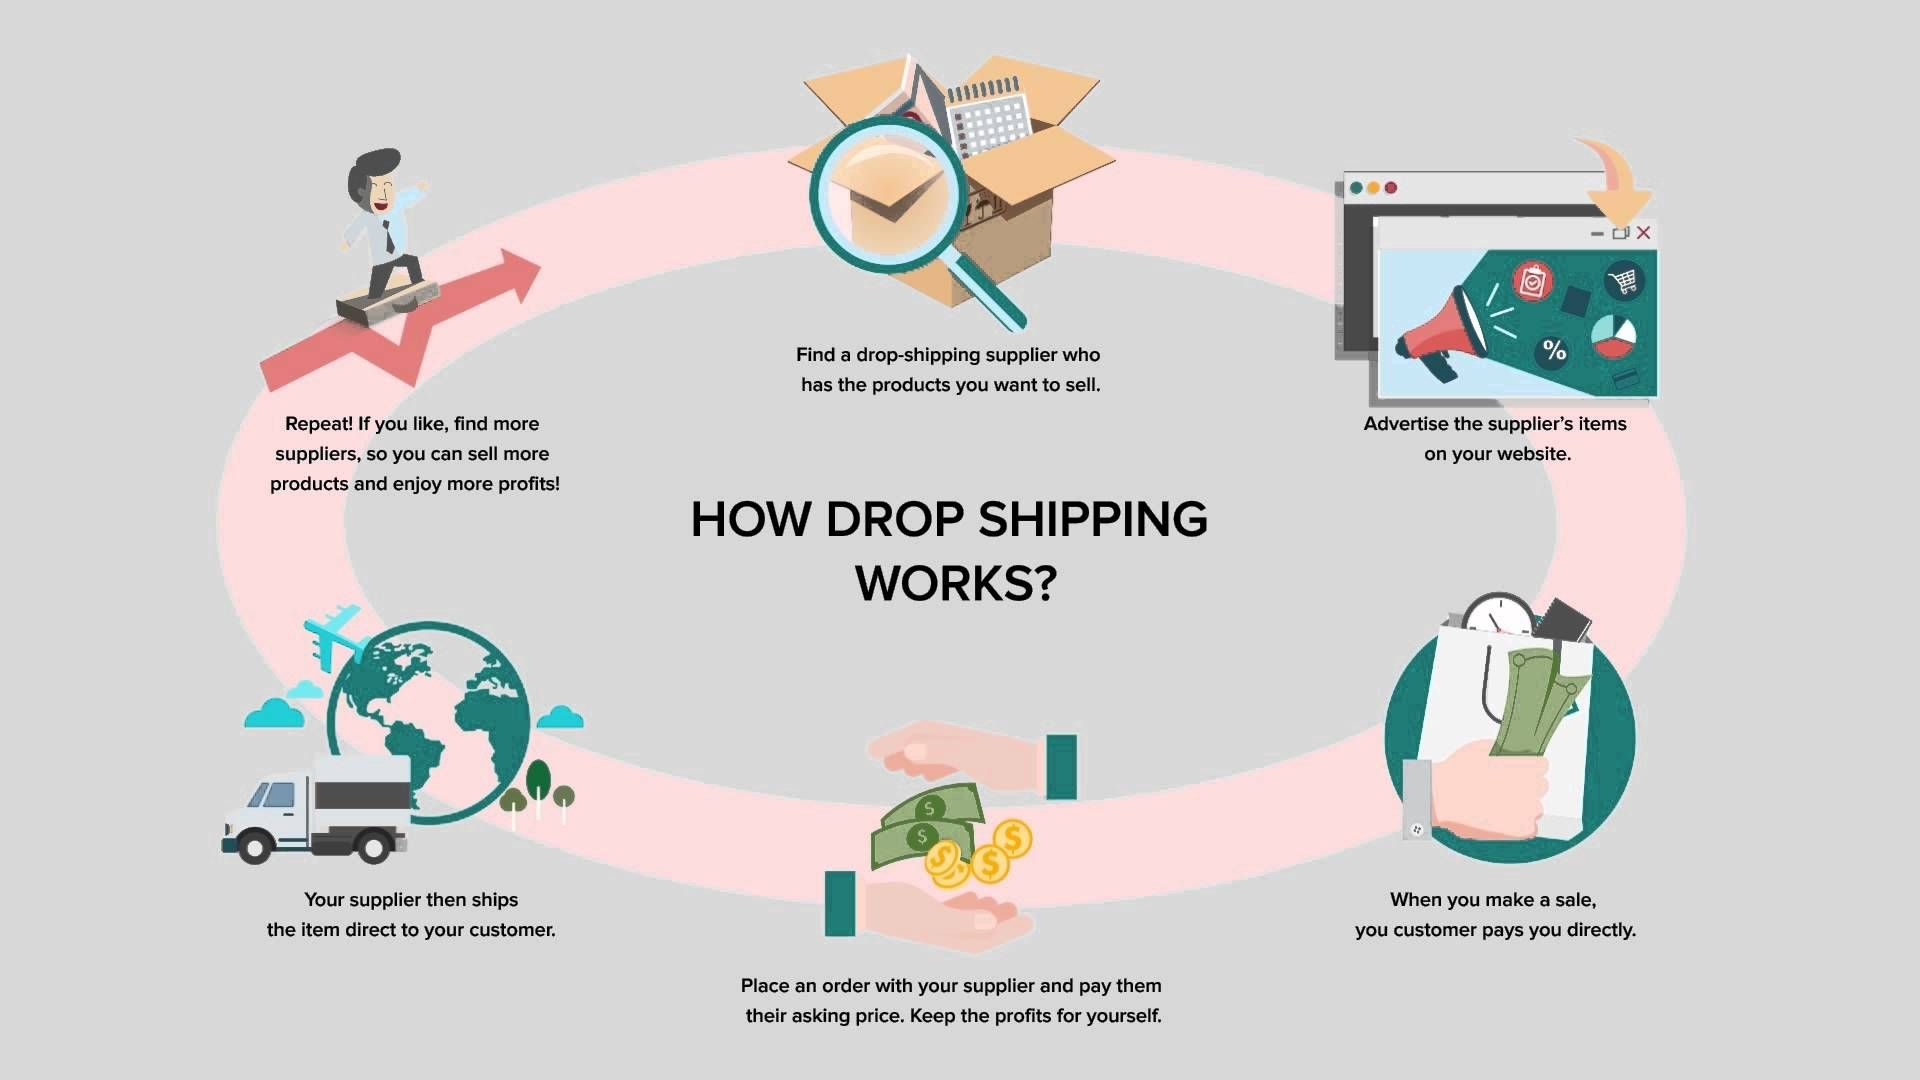 hi would you like to know that how to search dropshipping products on aliexpress then i will suggest you guys to check this guide that will help you for  [ 1920 x 1080 Pixel ]